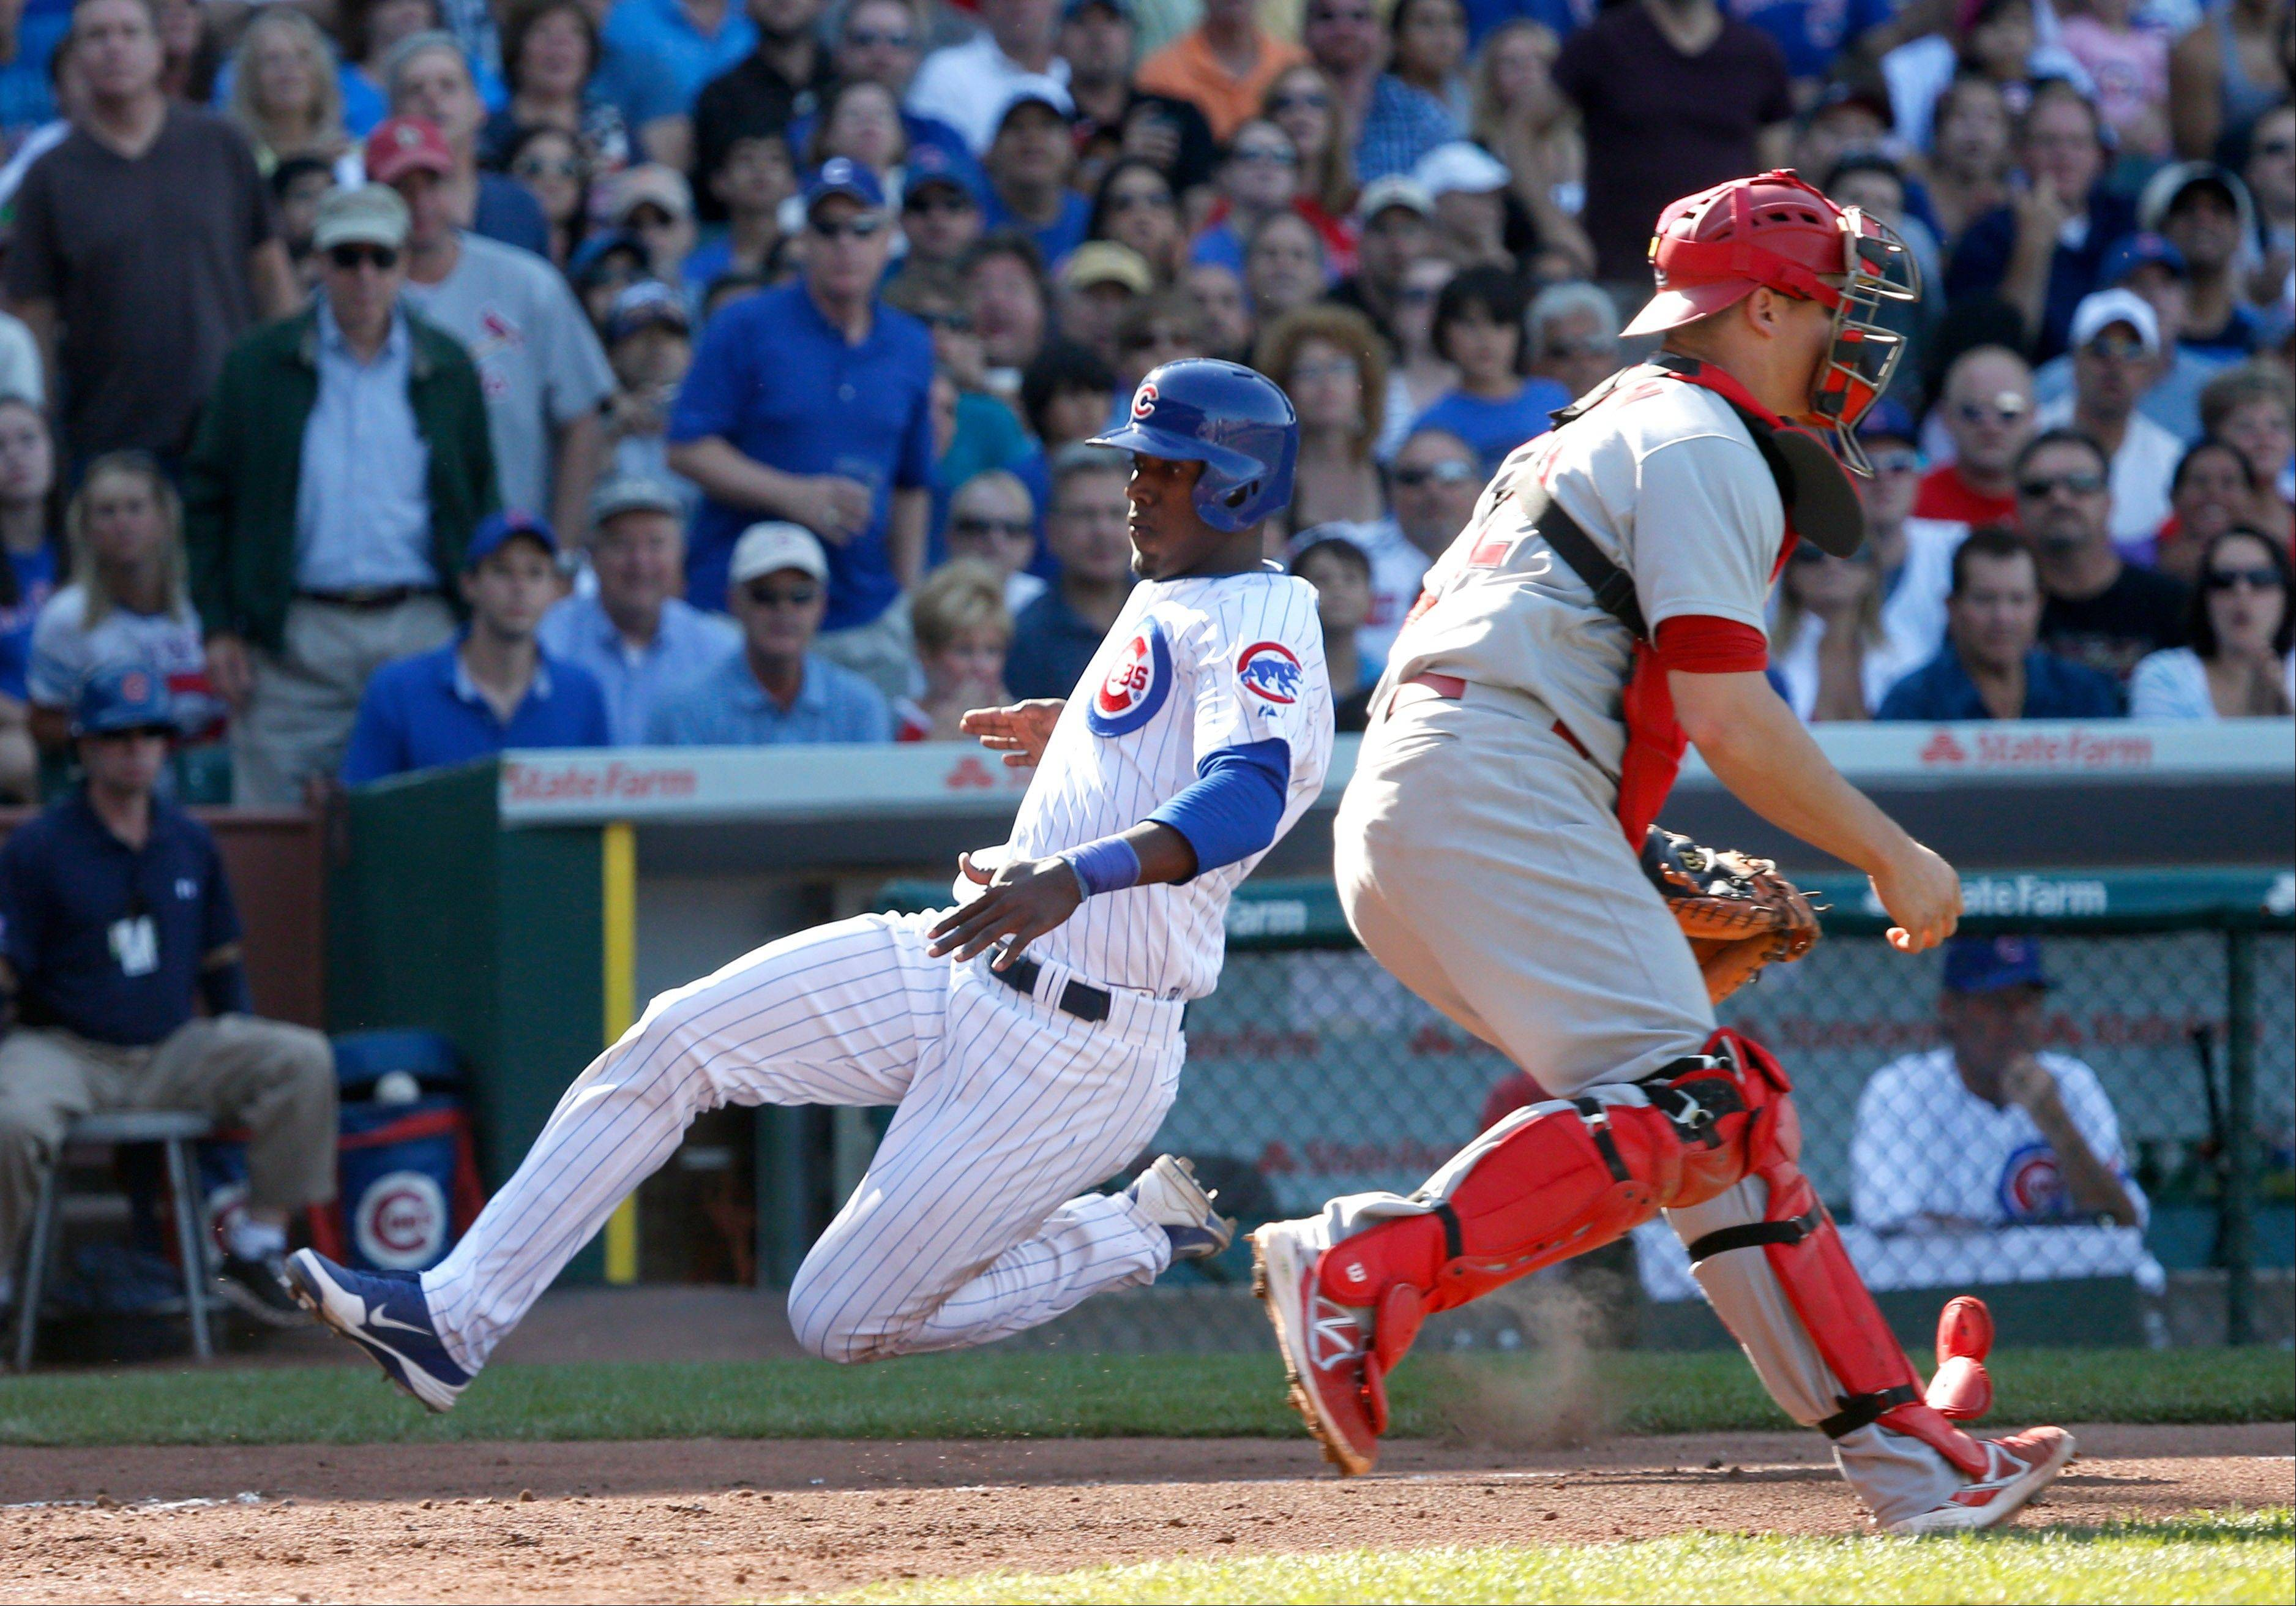 Chicago Cubs' Junior Lake scores past St. Louis Cardinals catcher Rob Johnson on a sacrifice fly by Nate Schierholtz during the fifth inning of a baseball game Friday, Aug. 16, 2013, in Chicago.